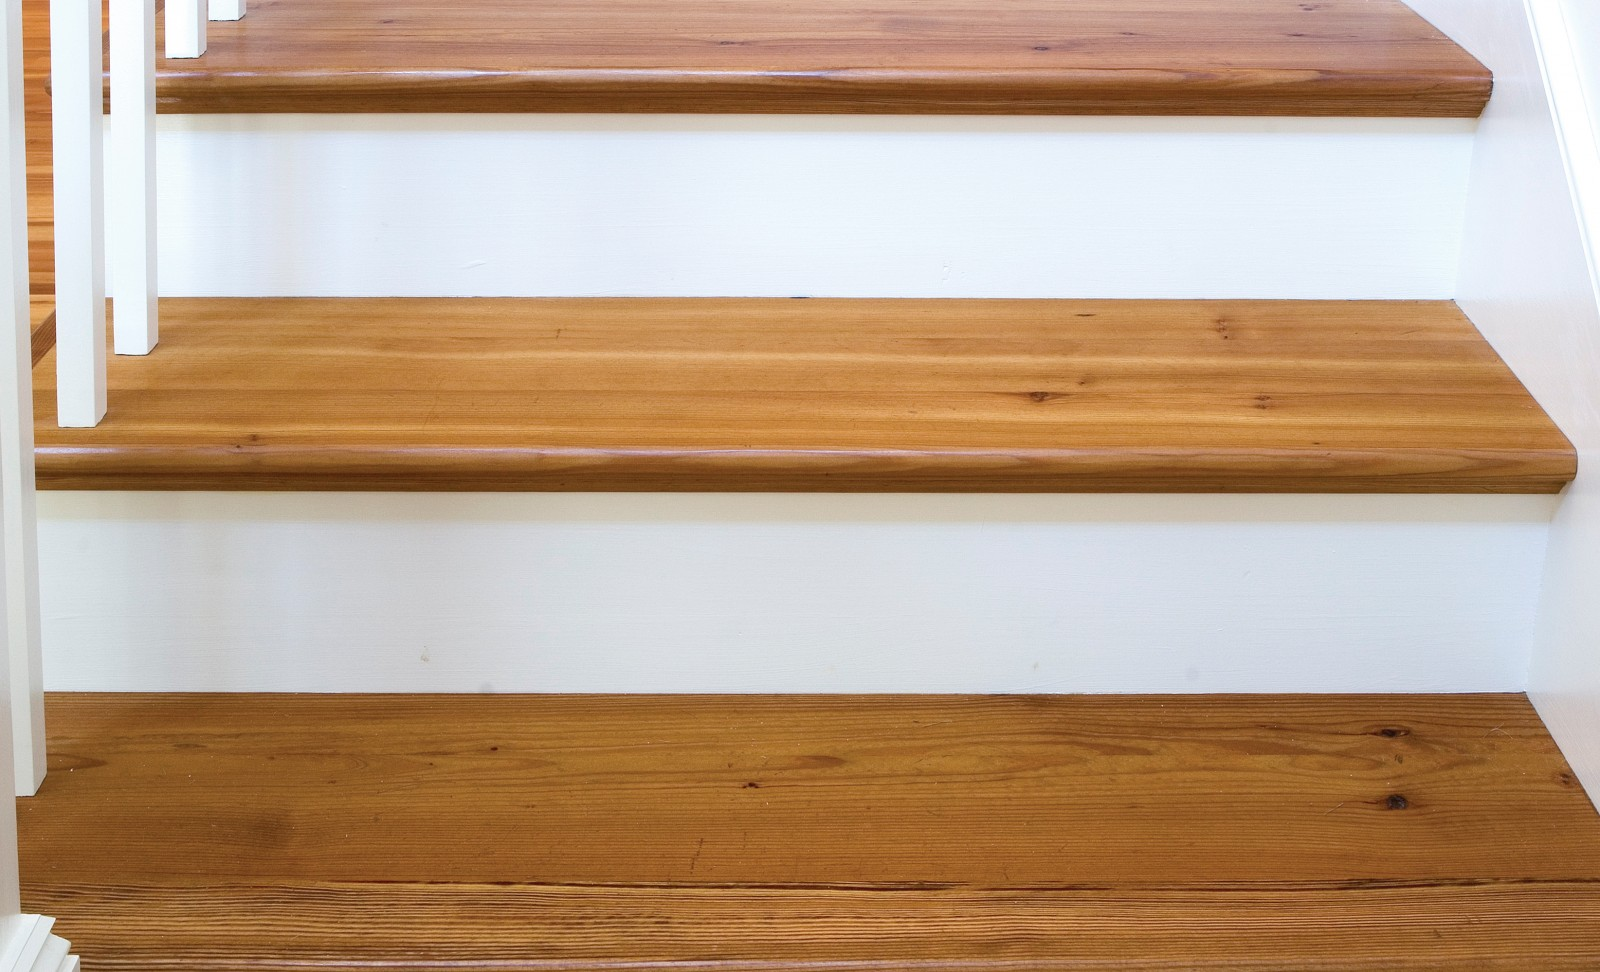 It Is Common For People To Order Just Treads And Use A Painted Riser Made  Of A Less Expensive Material Such As Poplar.